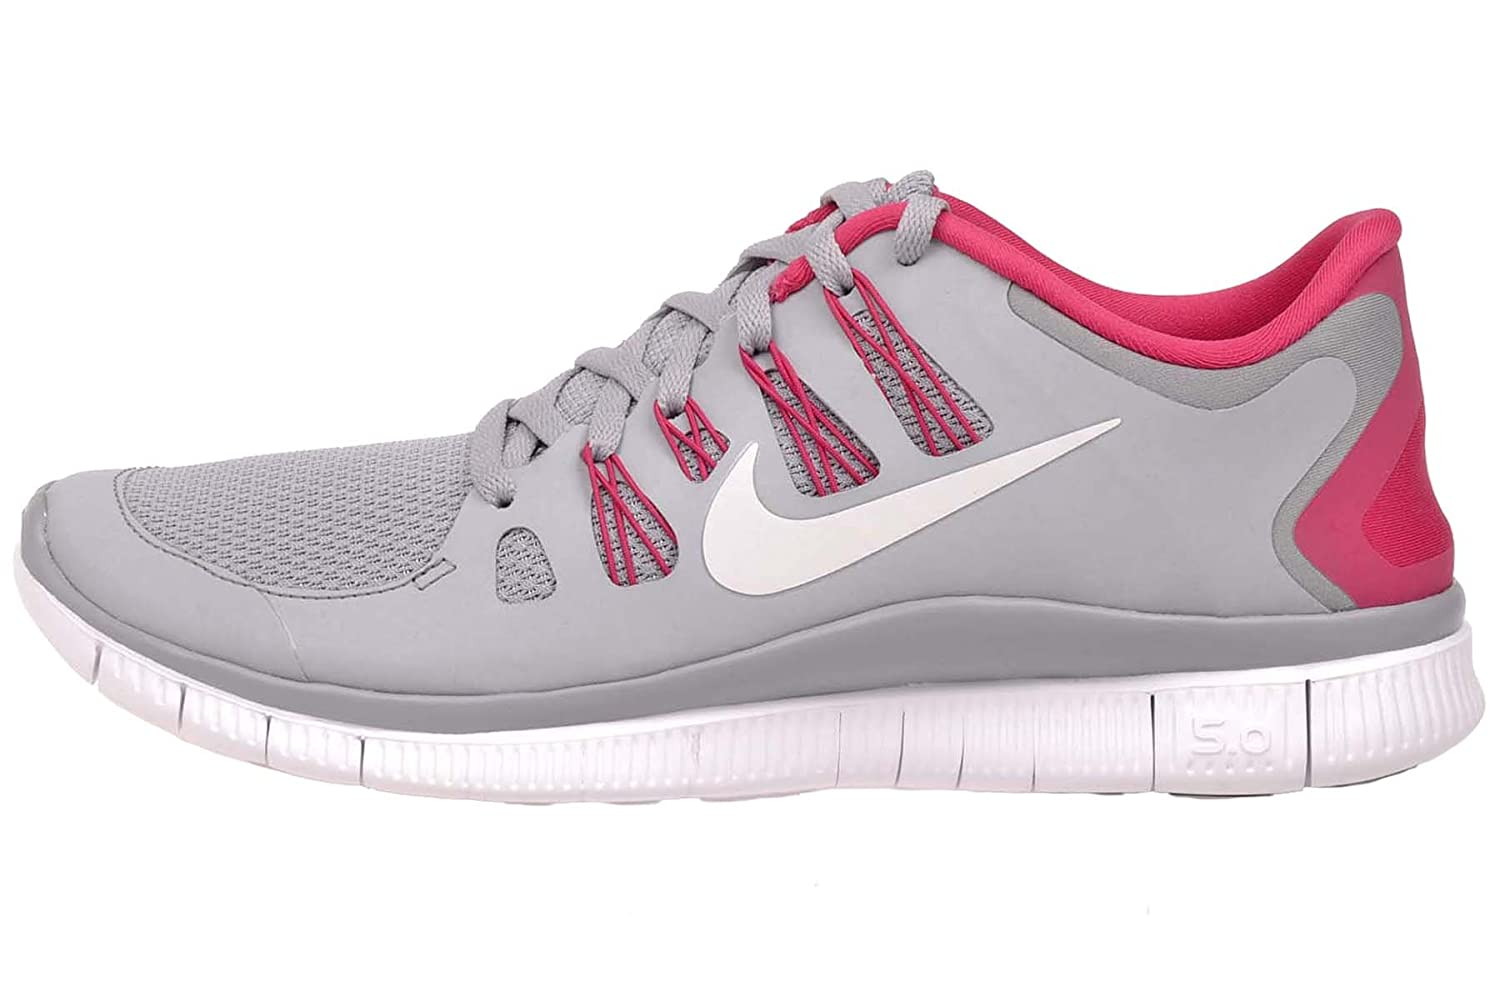 new style dfc91 7f7e7 Amazon.com   Nike Free 5.0+ Womens Running Shoes 580591-061 Wolf Grey Pink  Force-White (12 M)   Road Running